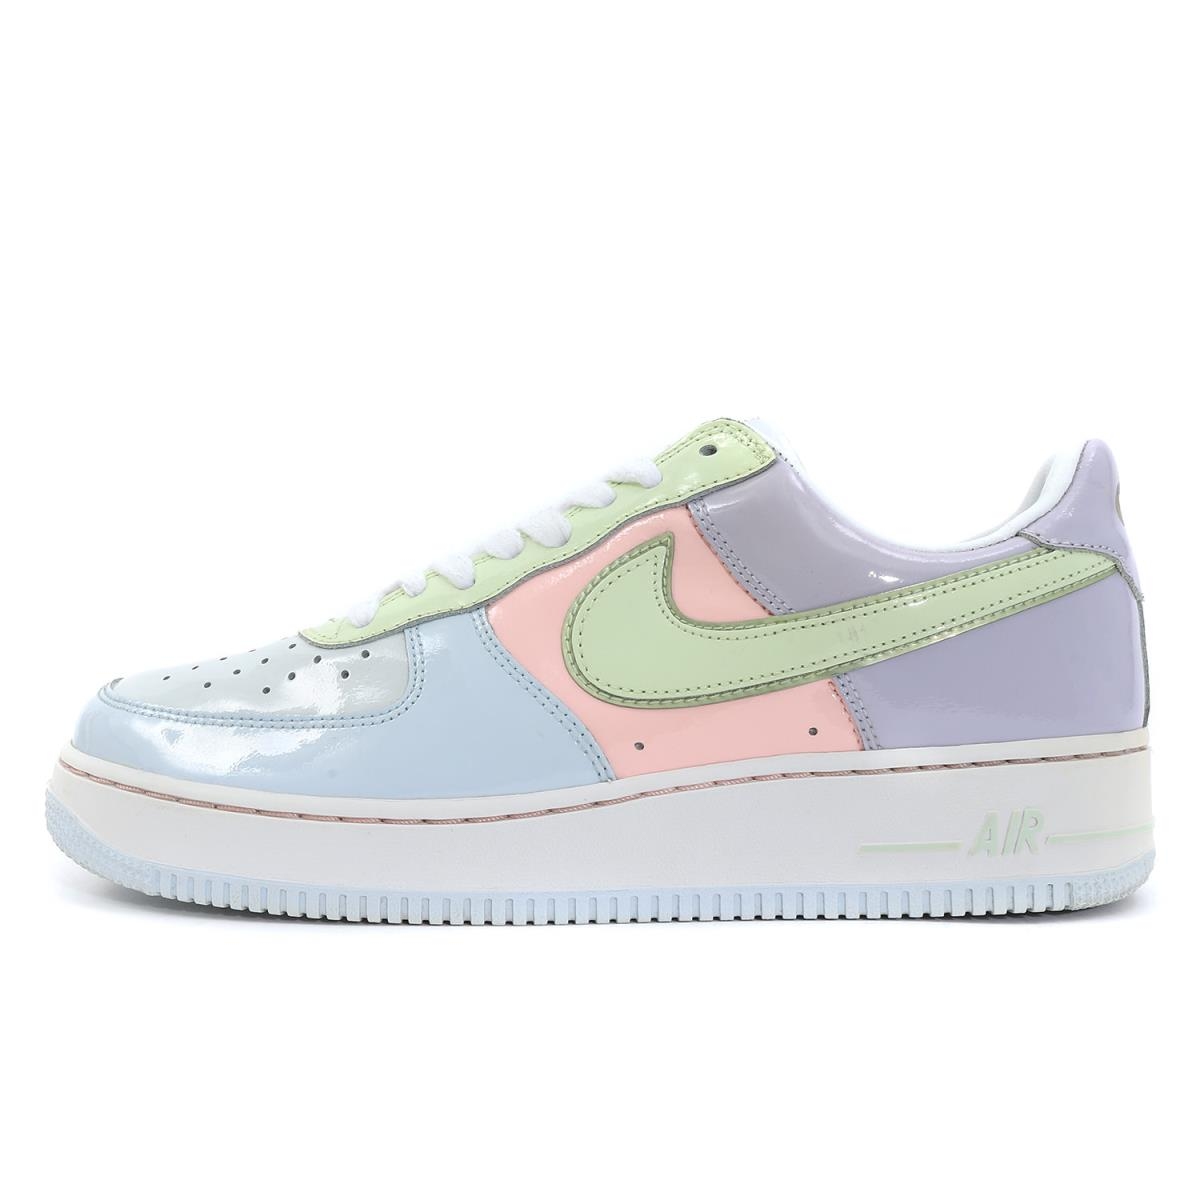 new styles 9c8cd 80577 NIKE (Nike) AIR FORCE 1 LOW EASTER EGG (307,334-531) titanium X lime ice  US9(27cm)